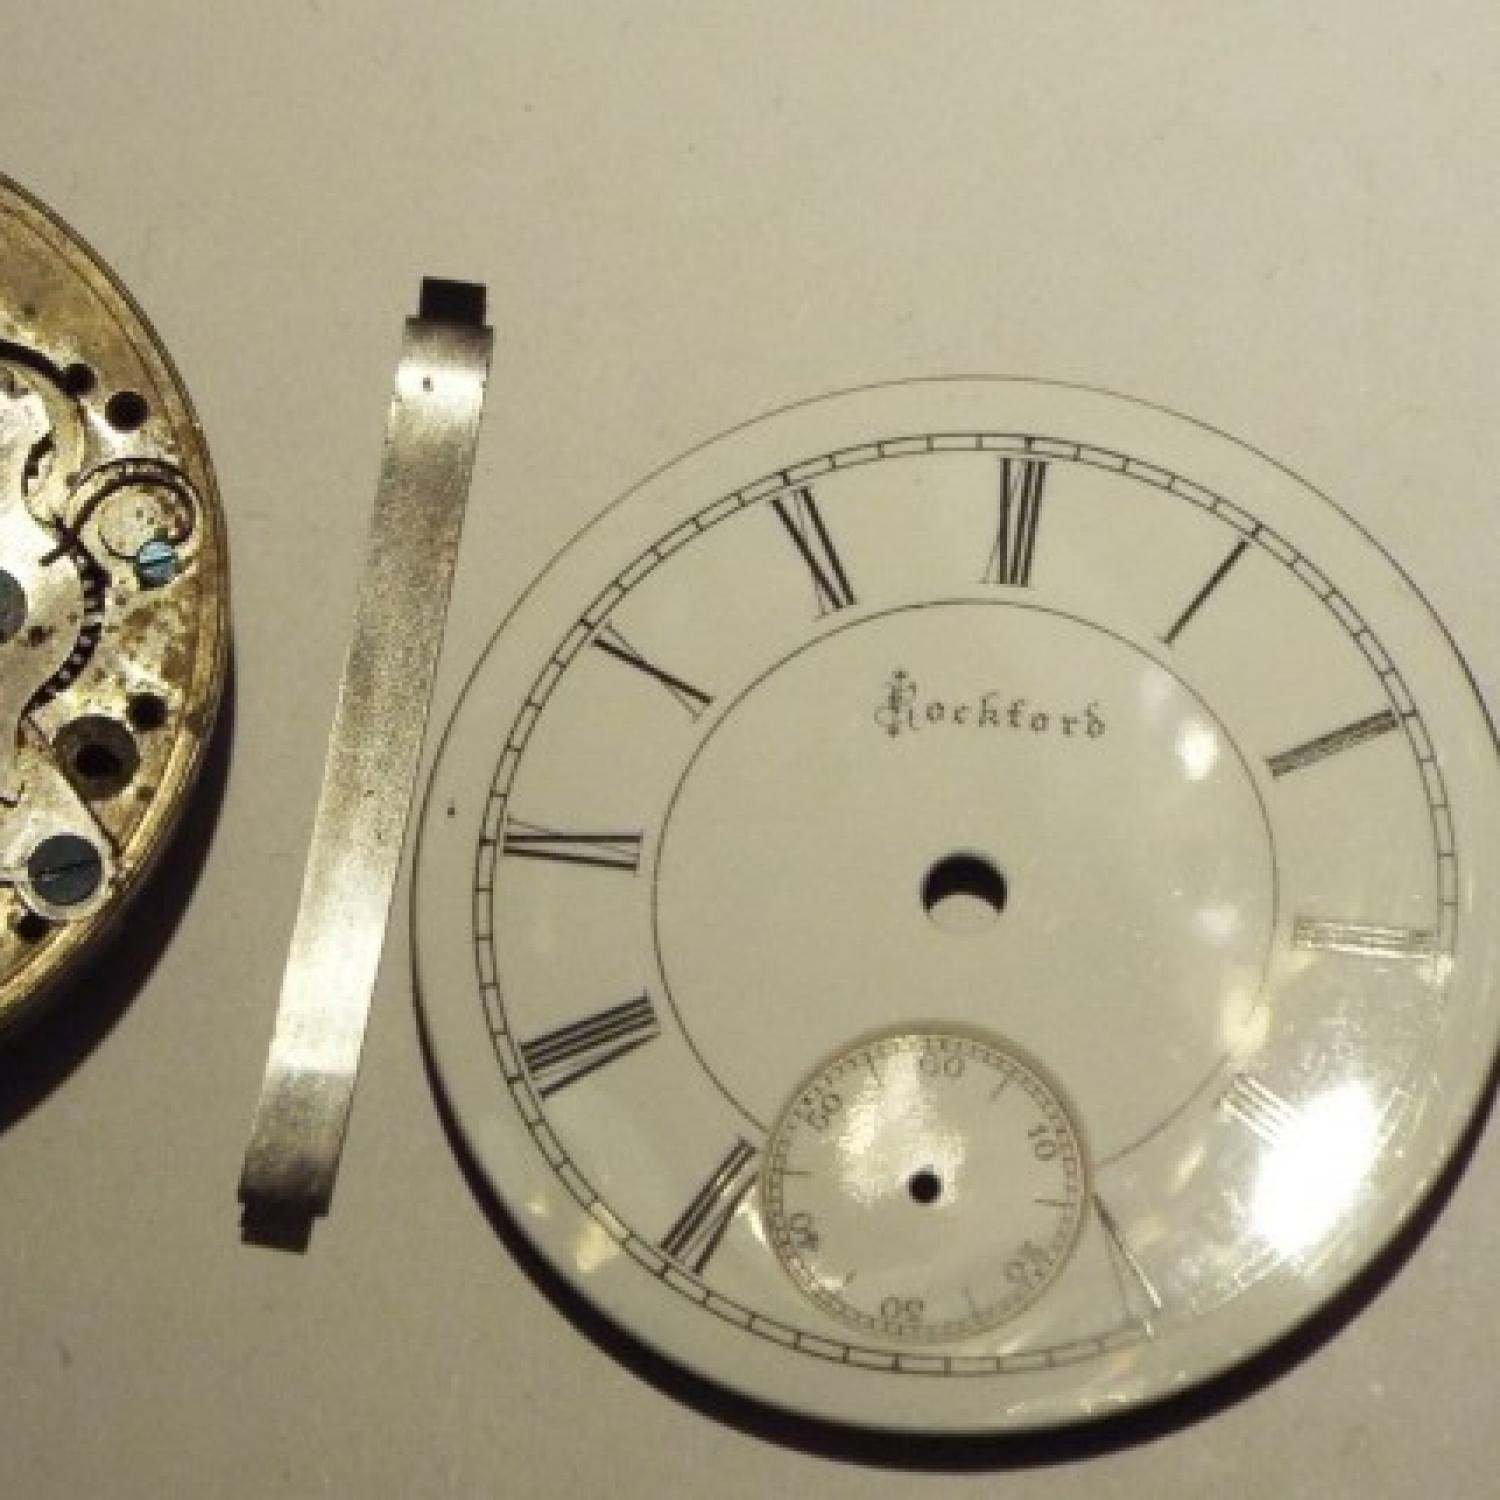 Image of Rockford 83 #417681 Dial